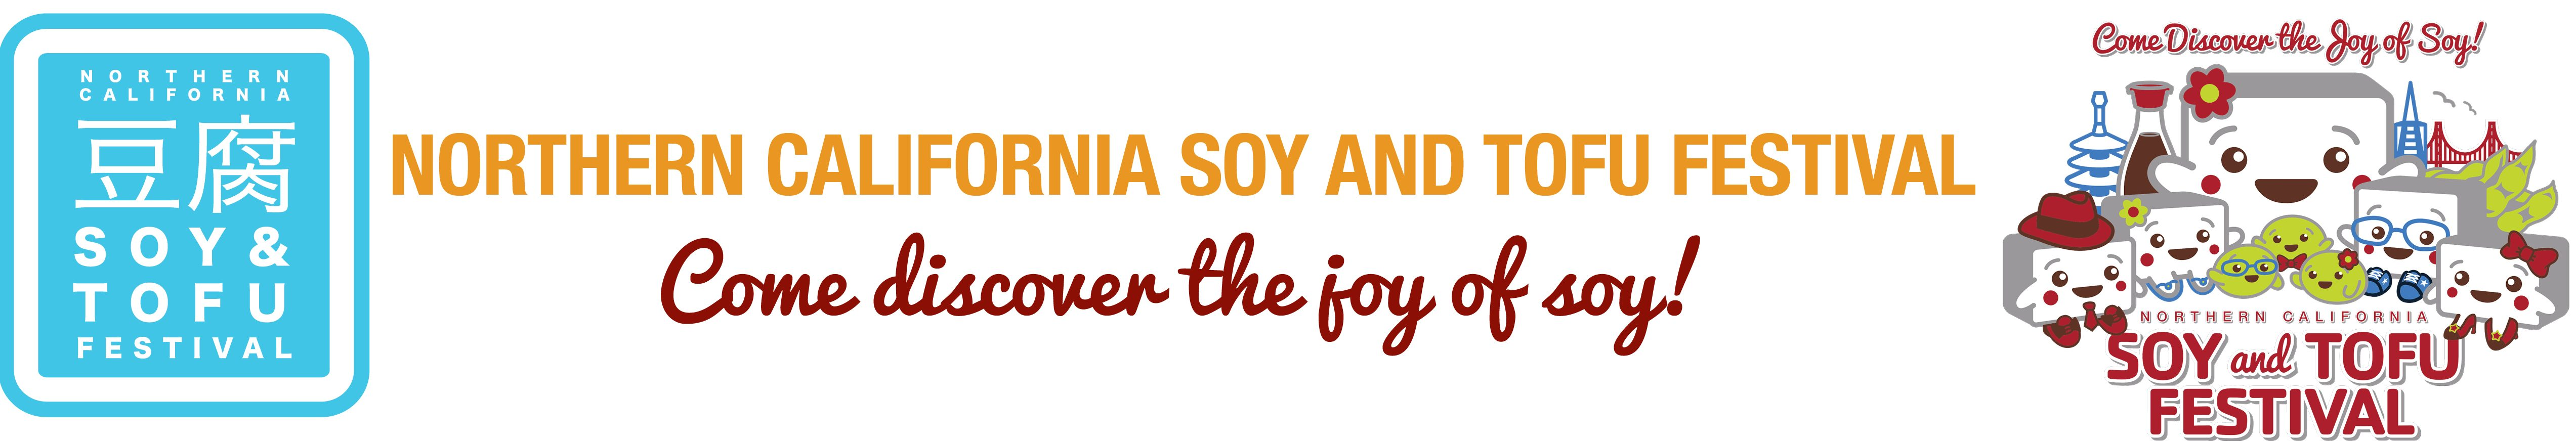 2018 Vendors – Northern California Soy and Tofu Festival